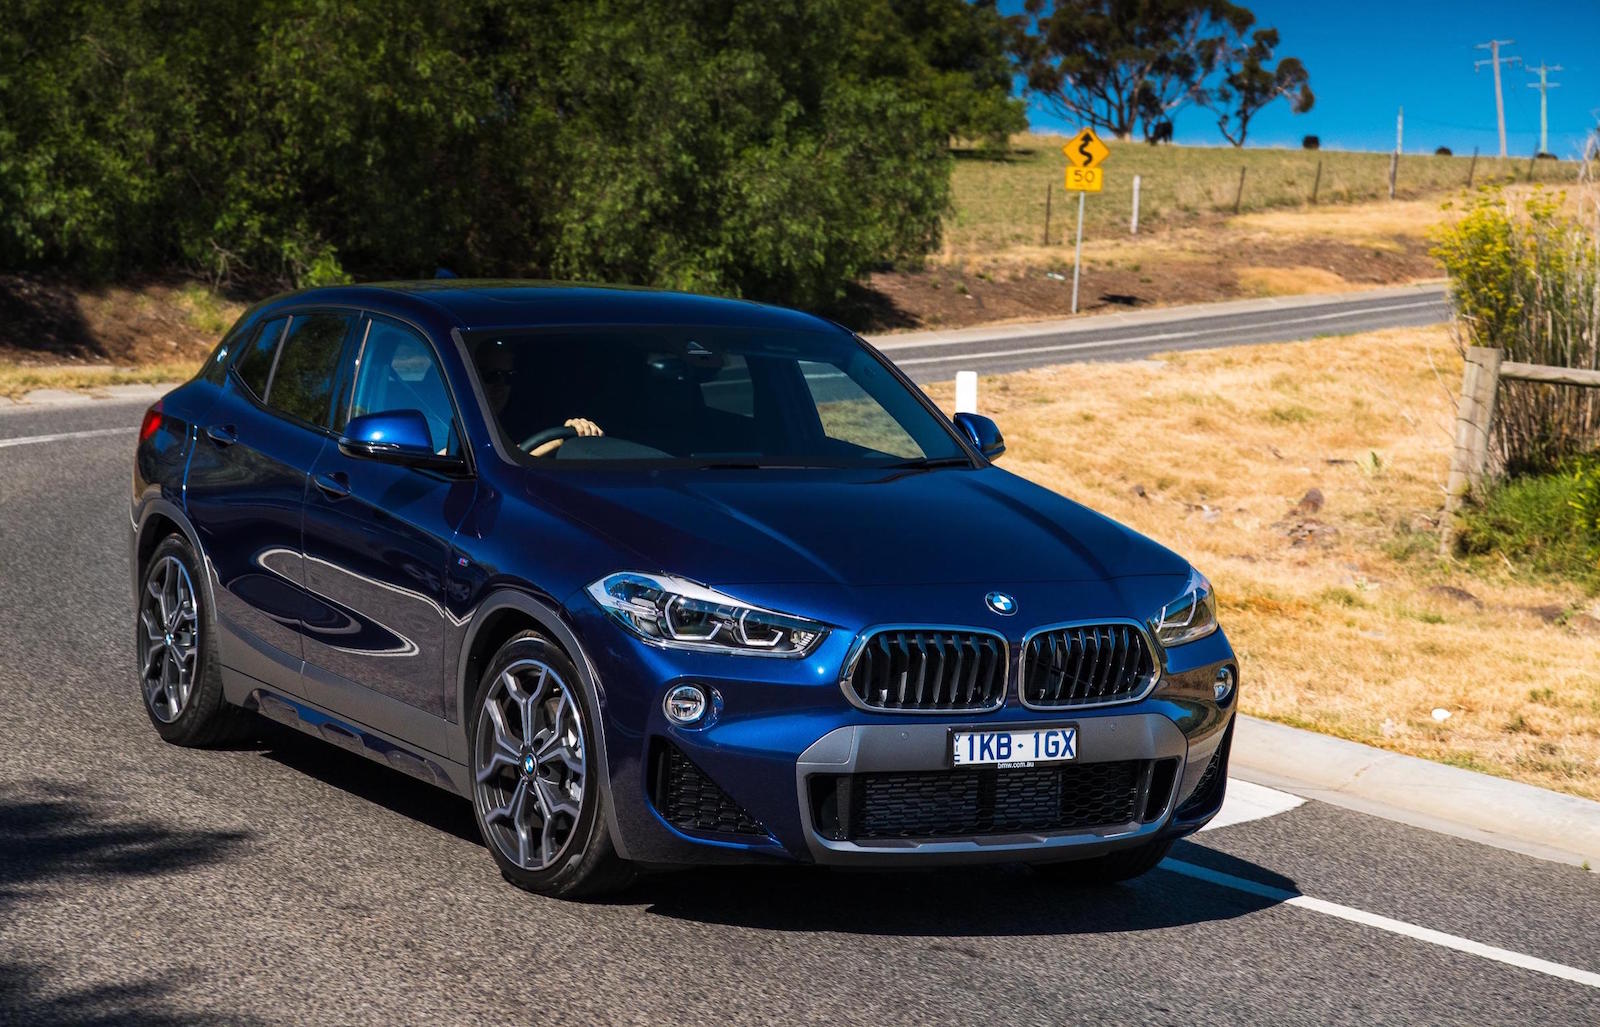 2019 Bmw X1 Amp X2 On Sale In Australia Price Cuts Of Up To